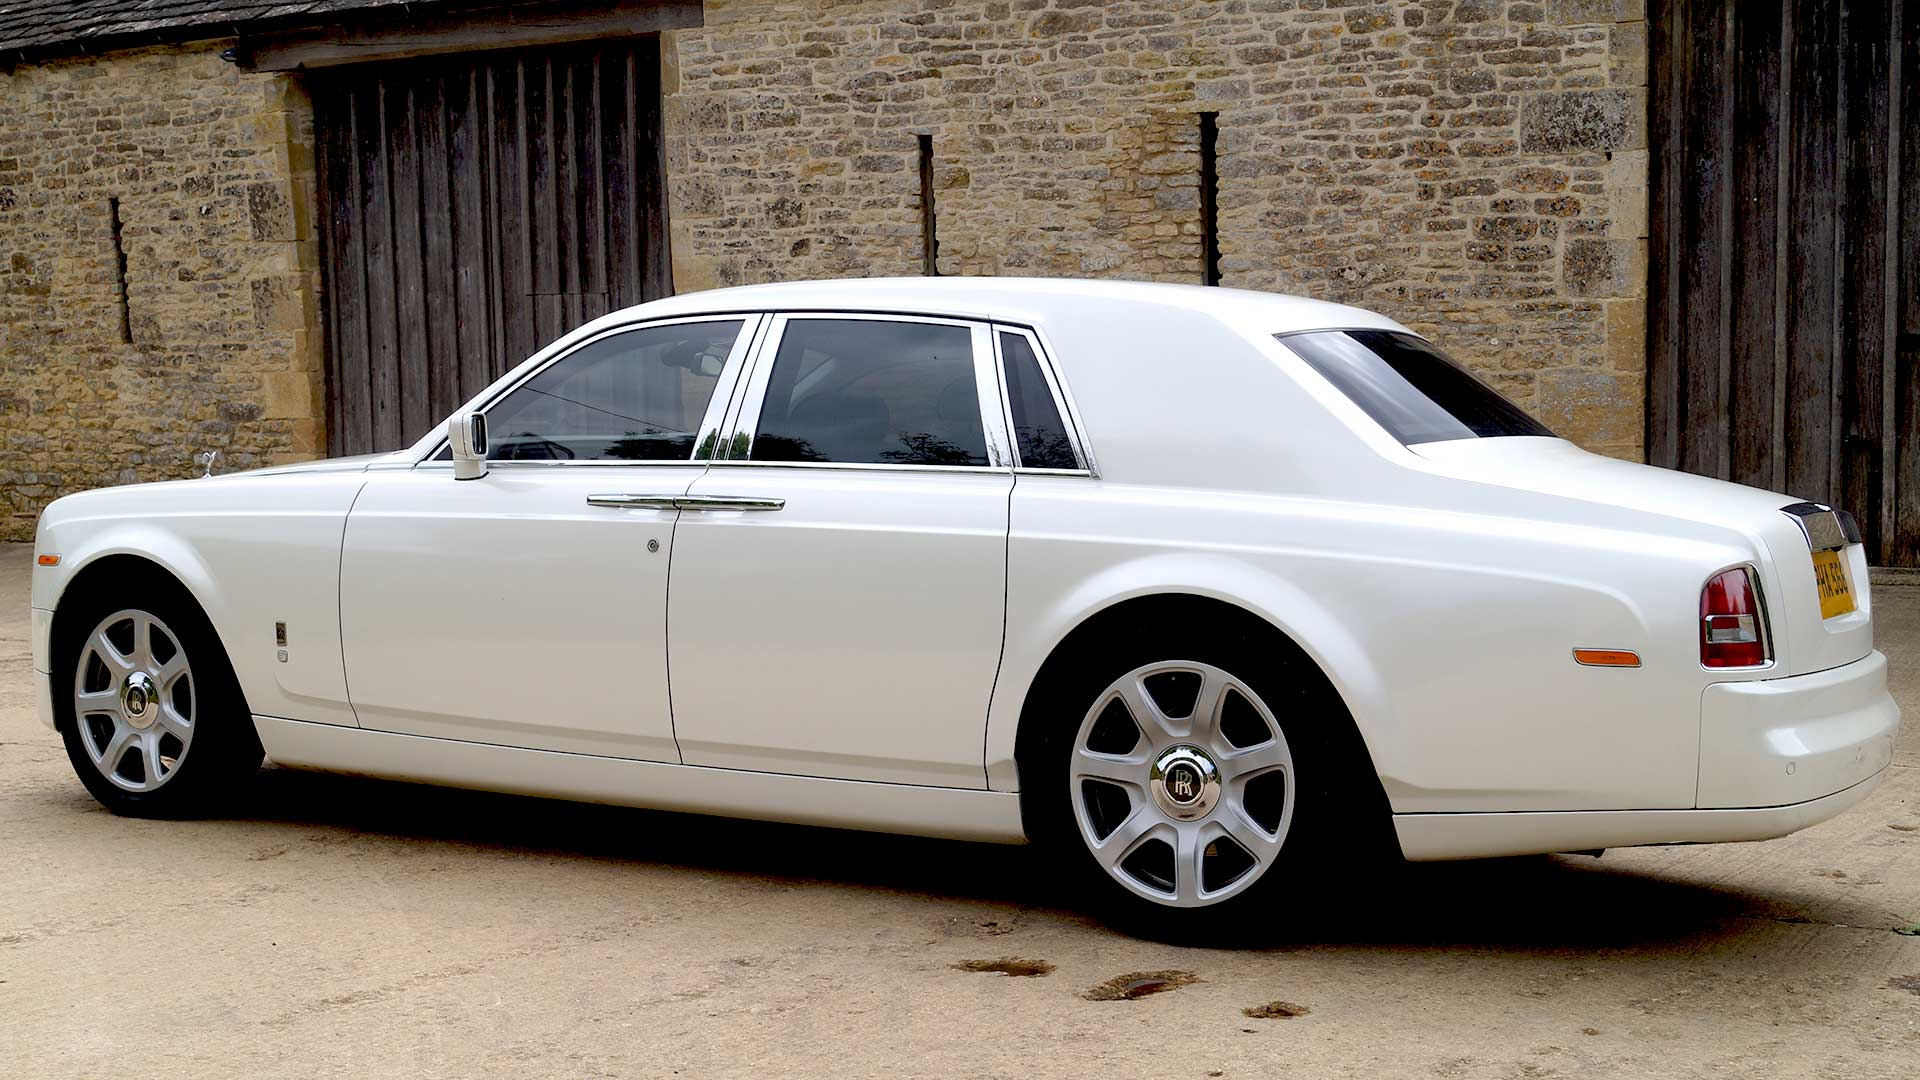 Rolls-Royce Phantom Key Features - Azure Wedding Cars